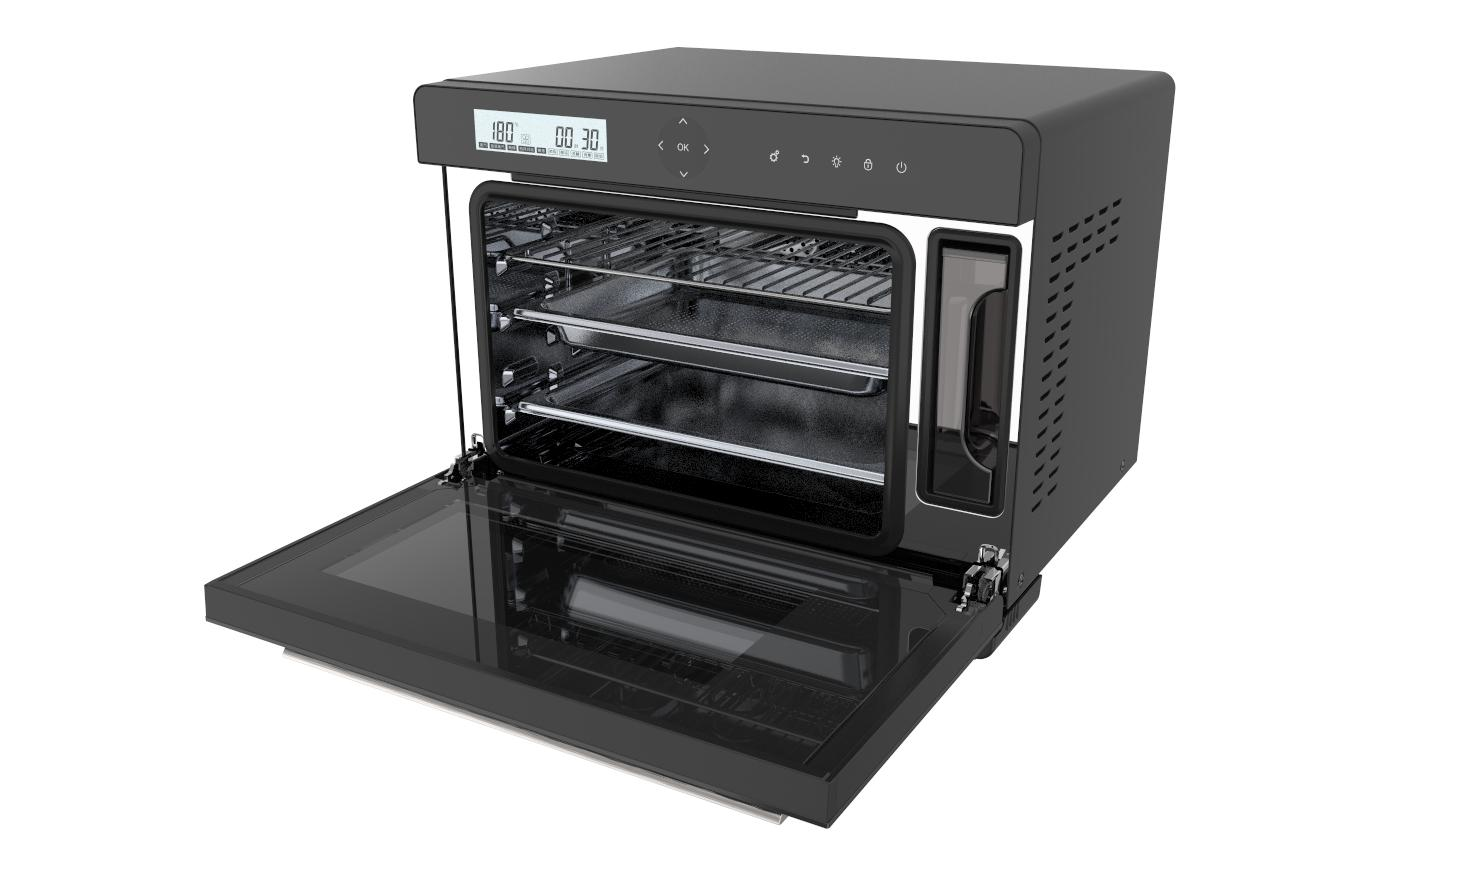 32L touch screen desktop electric steam oven 4